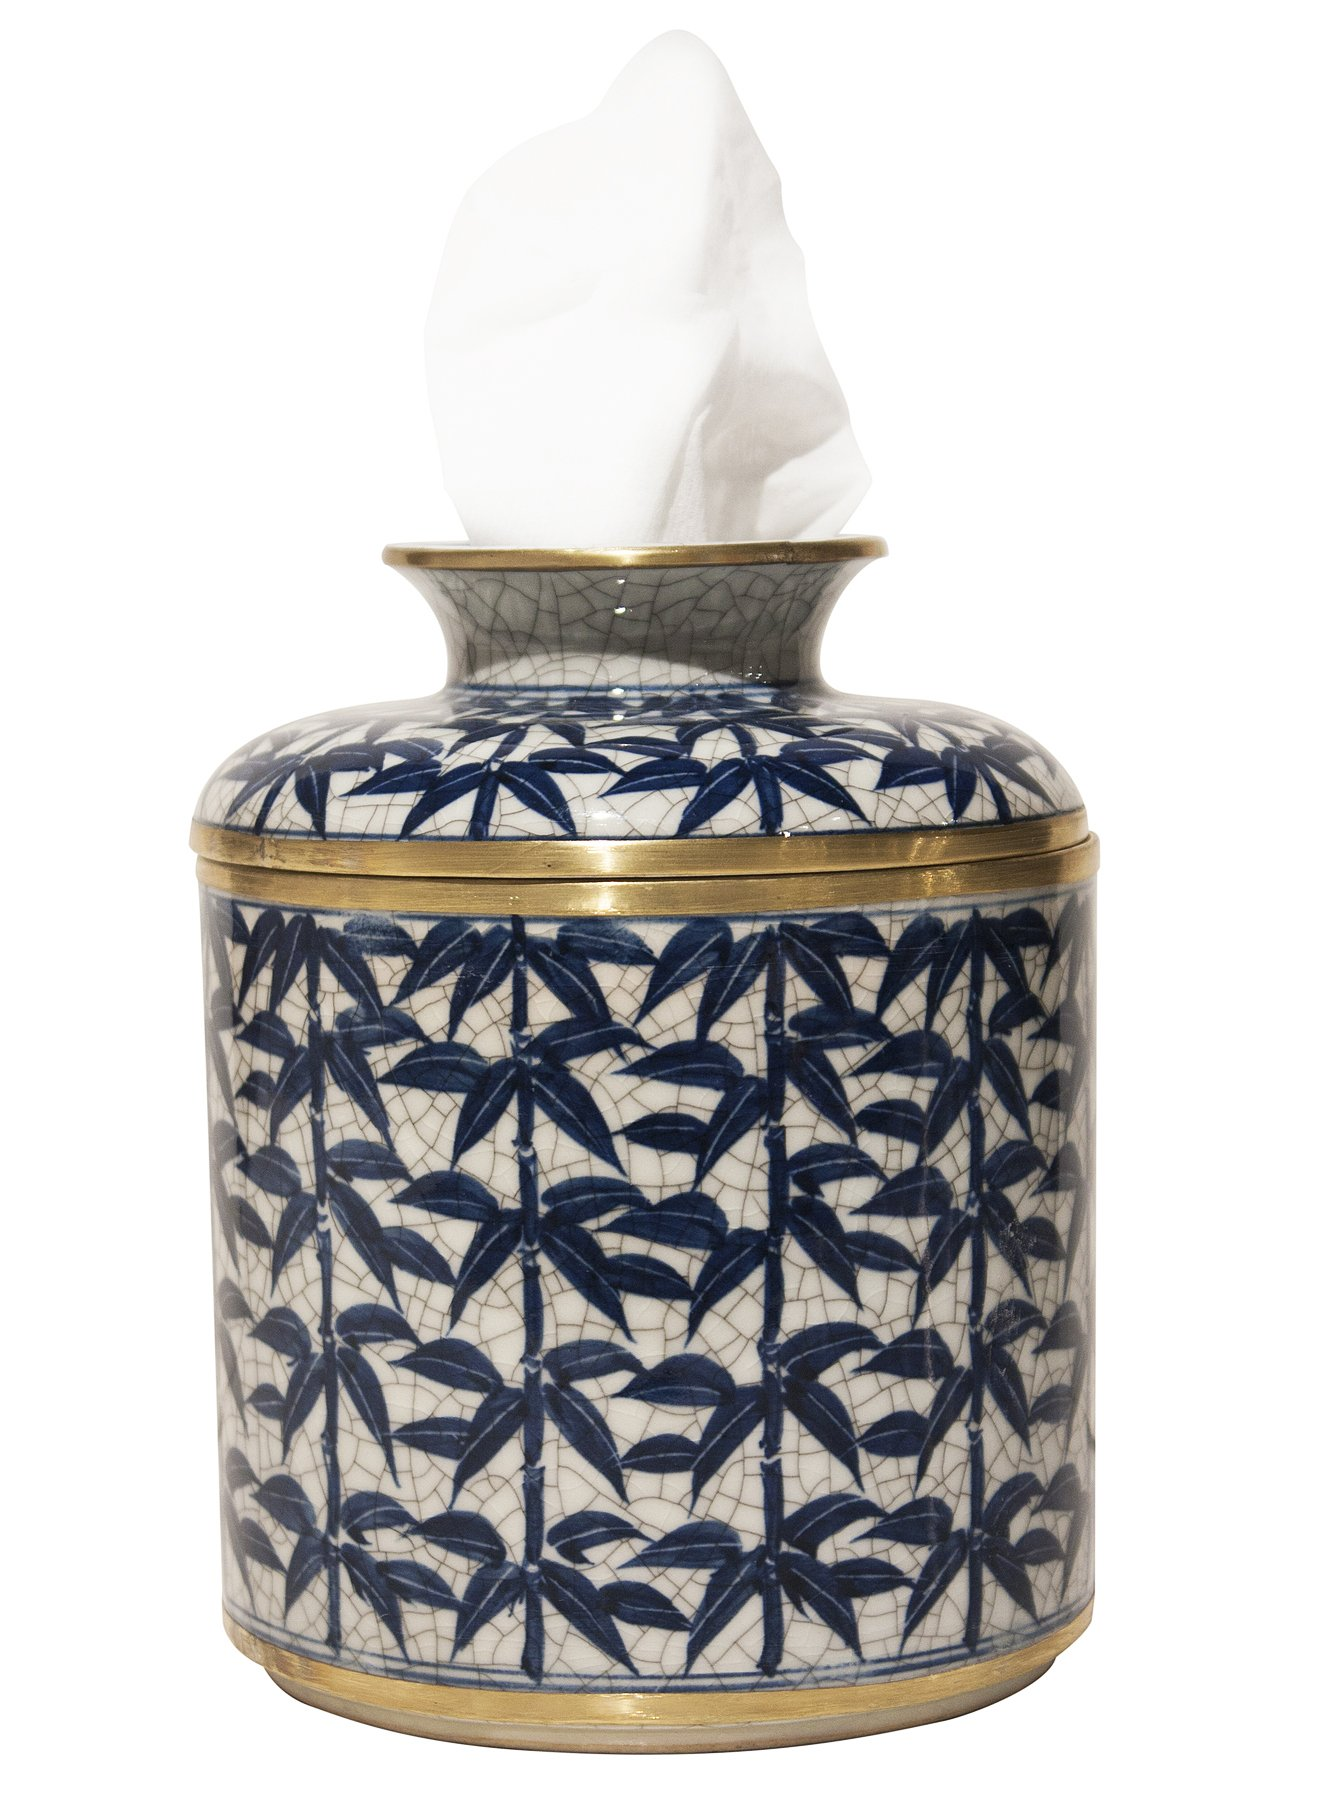 KANCHANABURI PORCELAIN TISSUE DISPENSER - TISSUE HOLDER - TISSUE COVER by KensingtonRow Home Collection